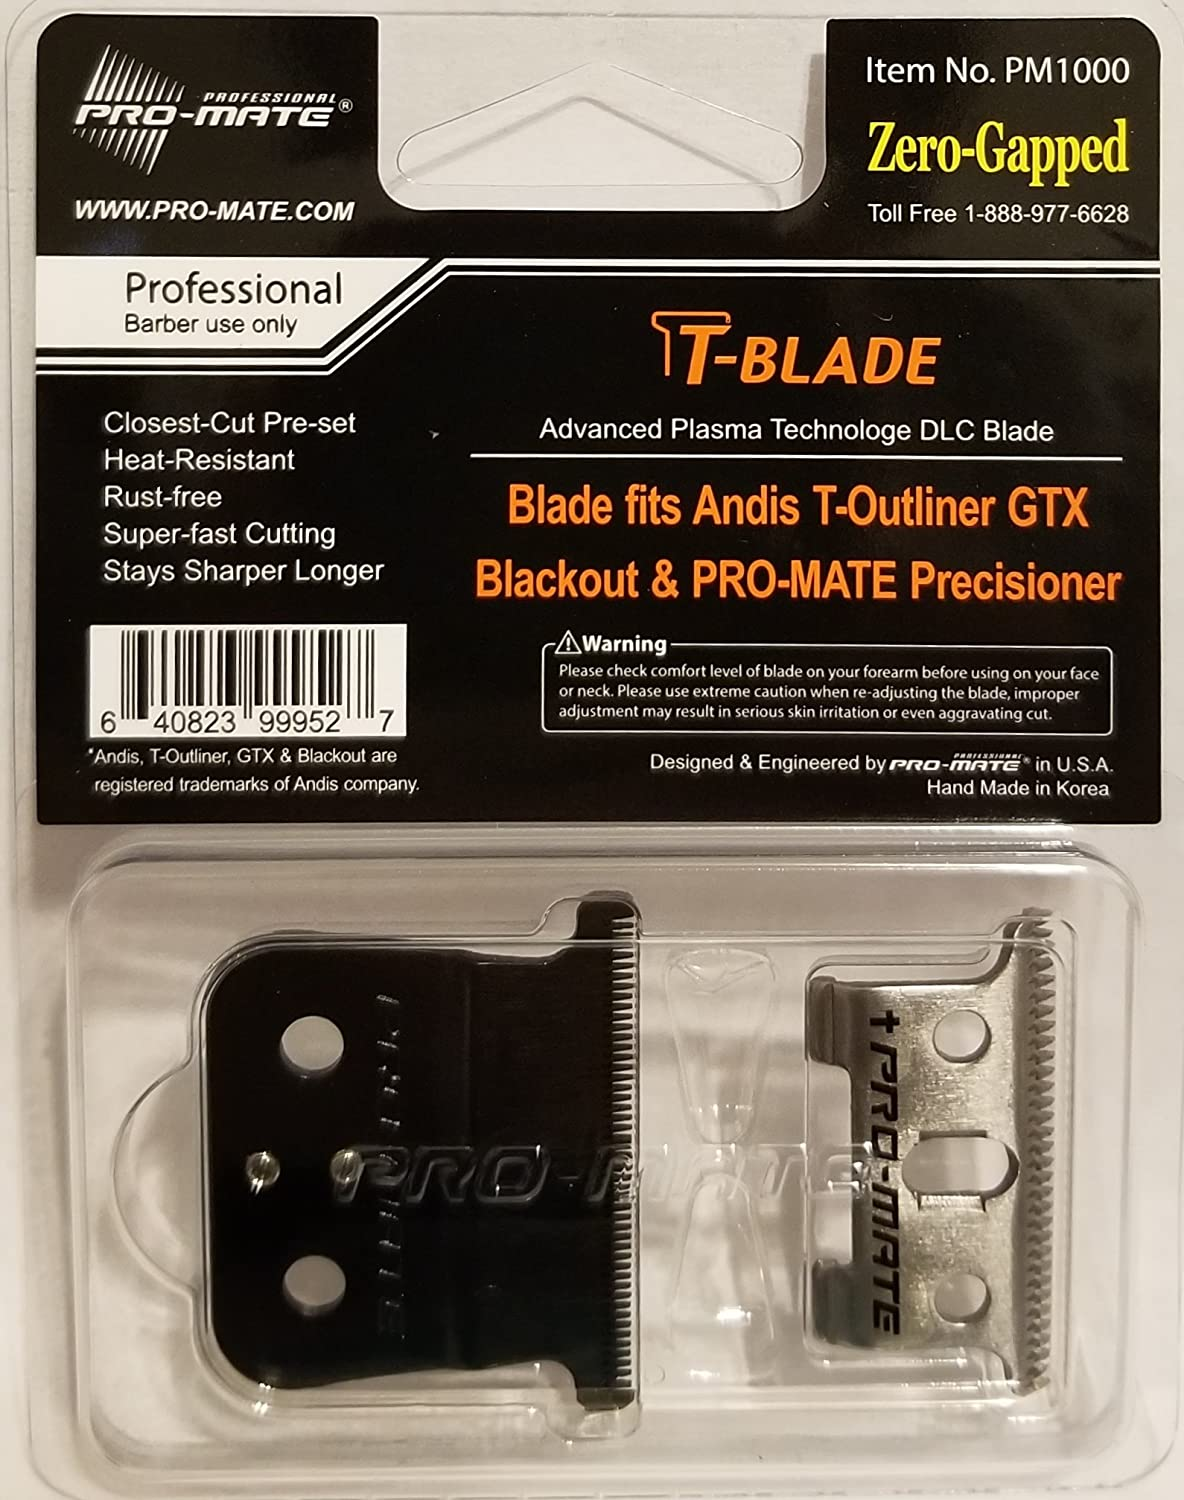 Pro-mate Trimmer Blade fits Andis T-Outliner PM1000